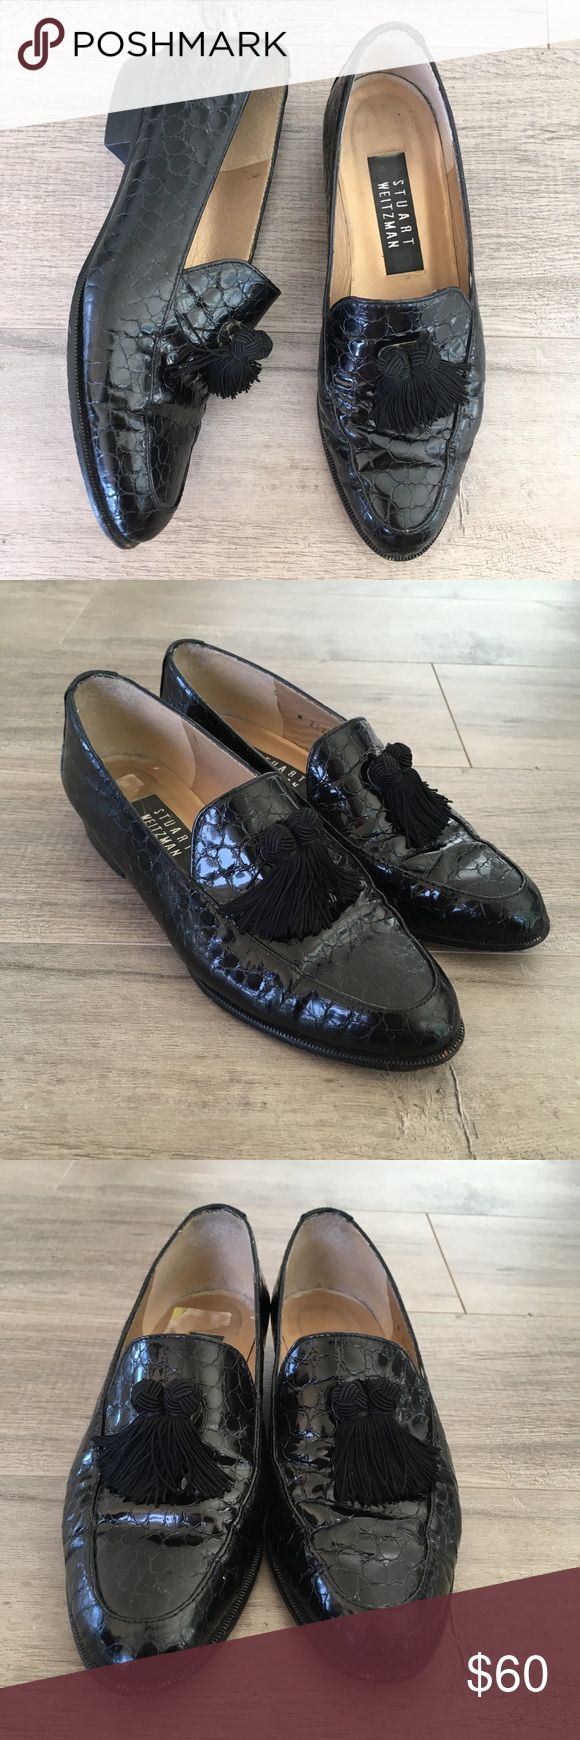 STUART WEITZMAN ~ patent leather tassel loafers STUART WEITZMAN ~  Stuart WEITZMAN brand  Black leather loafers  Animal embossed print  Tassel front  Black flats  Vintage loafers  Size 6  Pre owned great vintage condition Stuart Weitzman Shoes Flats & Loafers #stuartweitzmanloafers